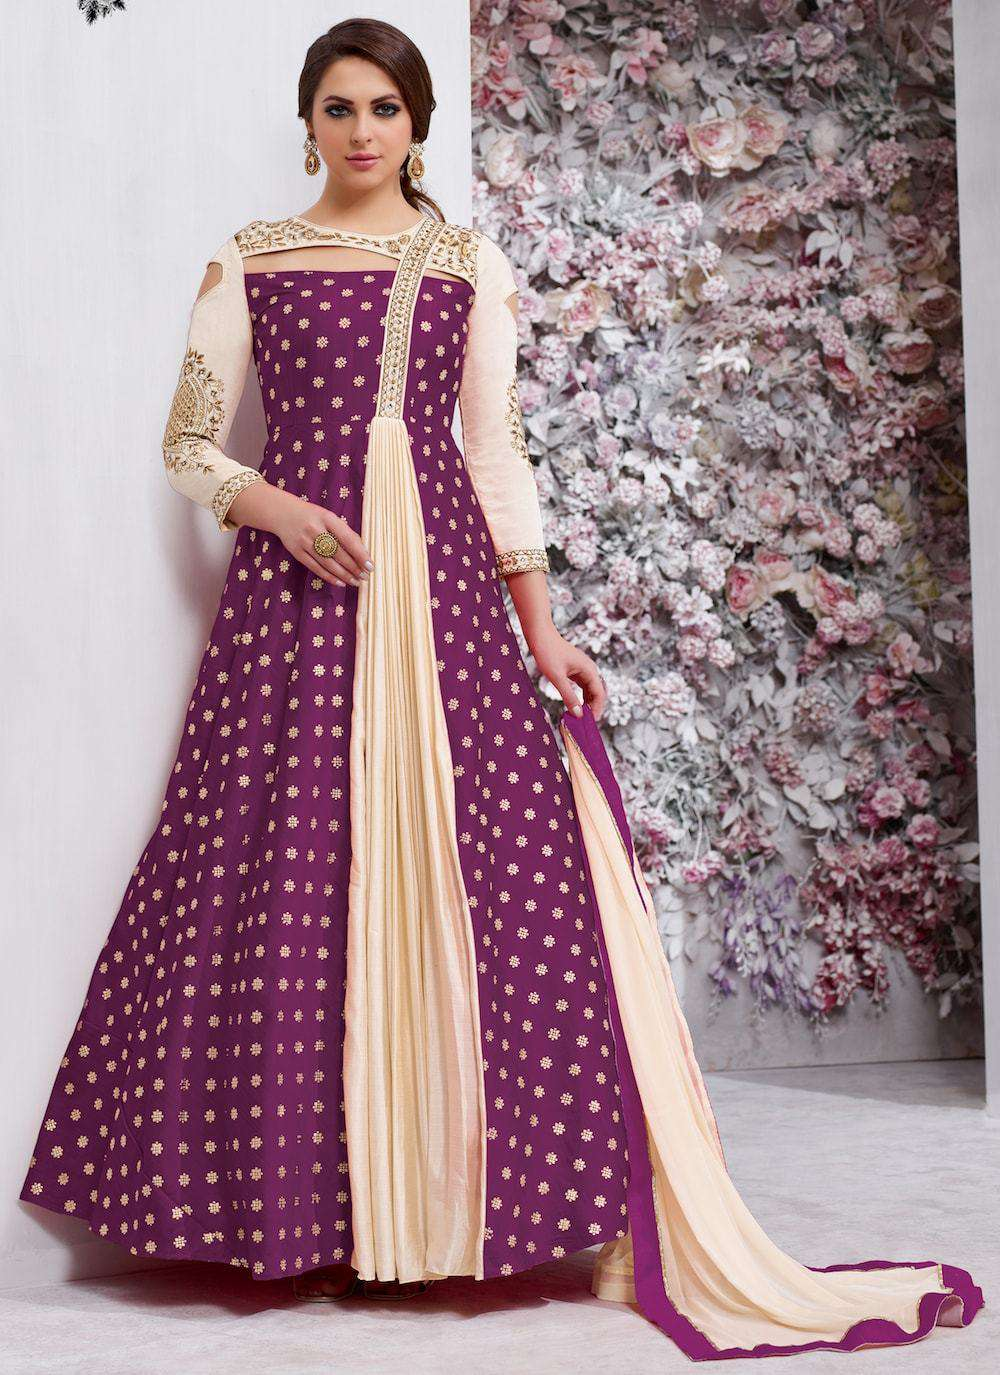 Elegant Purple Banarsi Silk Embroidered Salwar Kameez MYSK-1108